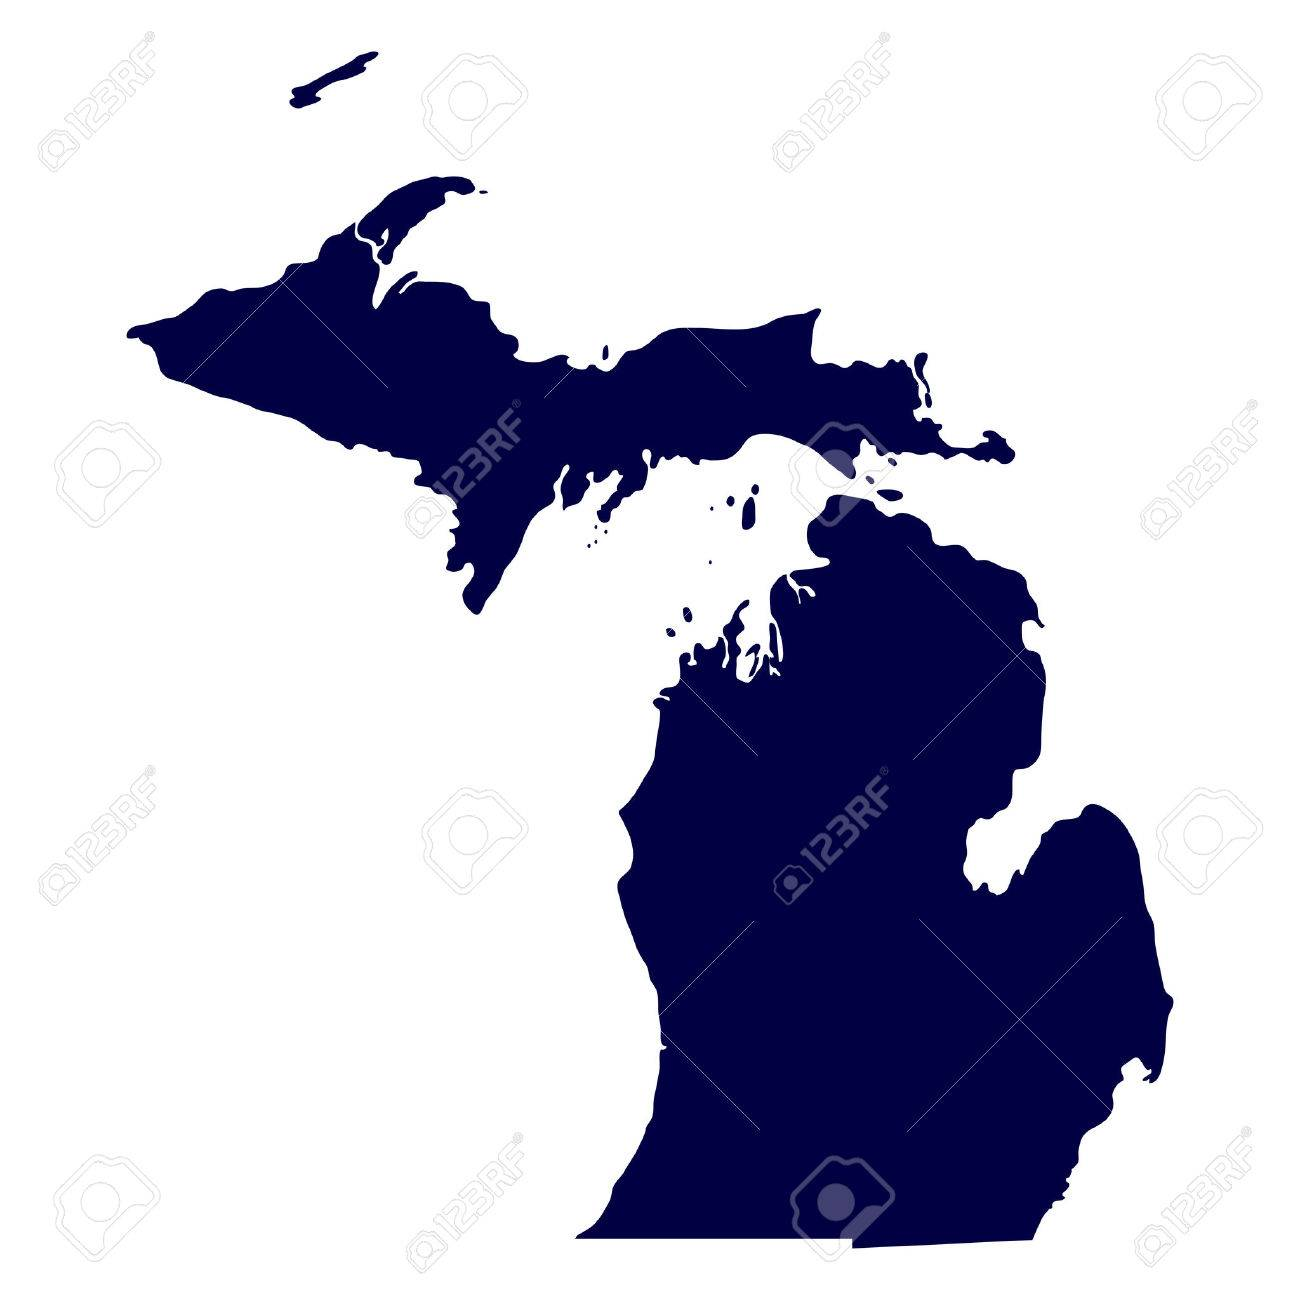 Map Of The U S State Of Michigan Royalty Free Cliparts Vectors - Map of us michigan